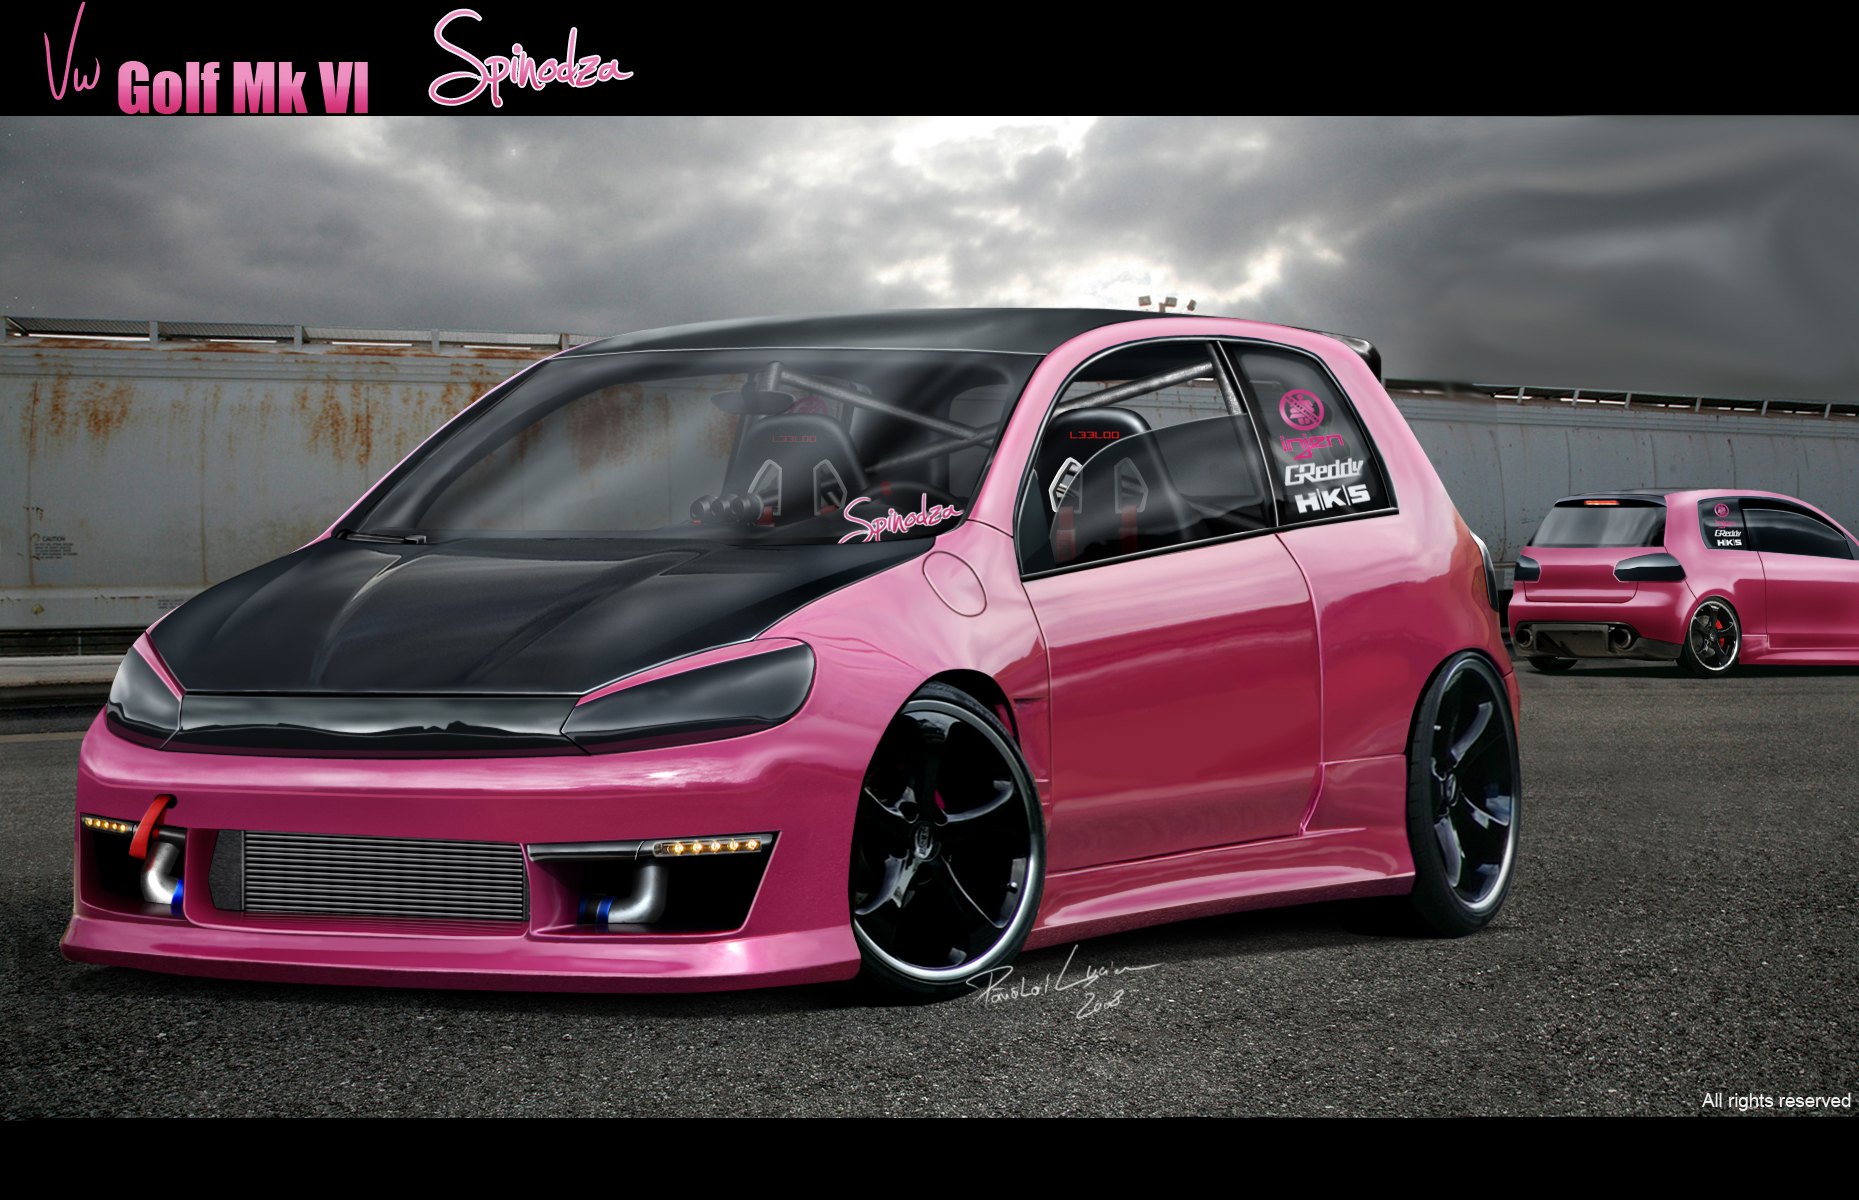 vw golf vi spinodza plus rear by leel00 on deviantart. Black Bedroom Furniture Sets. Home Design Ideas